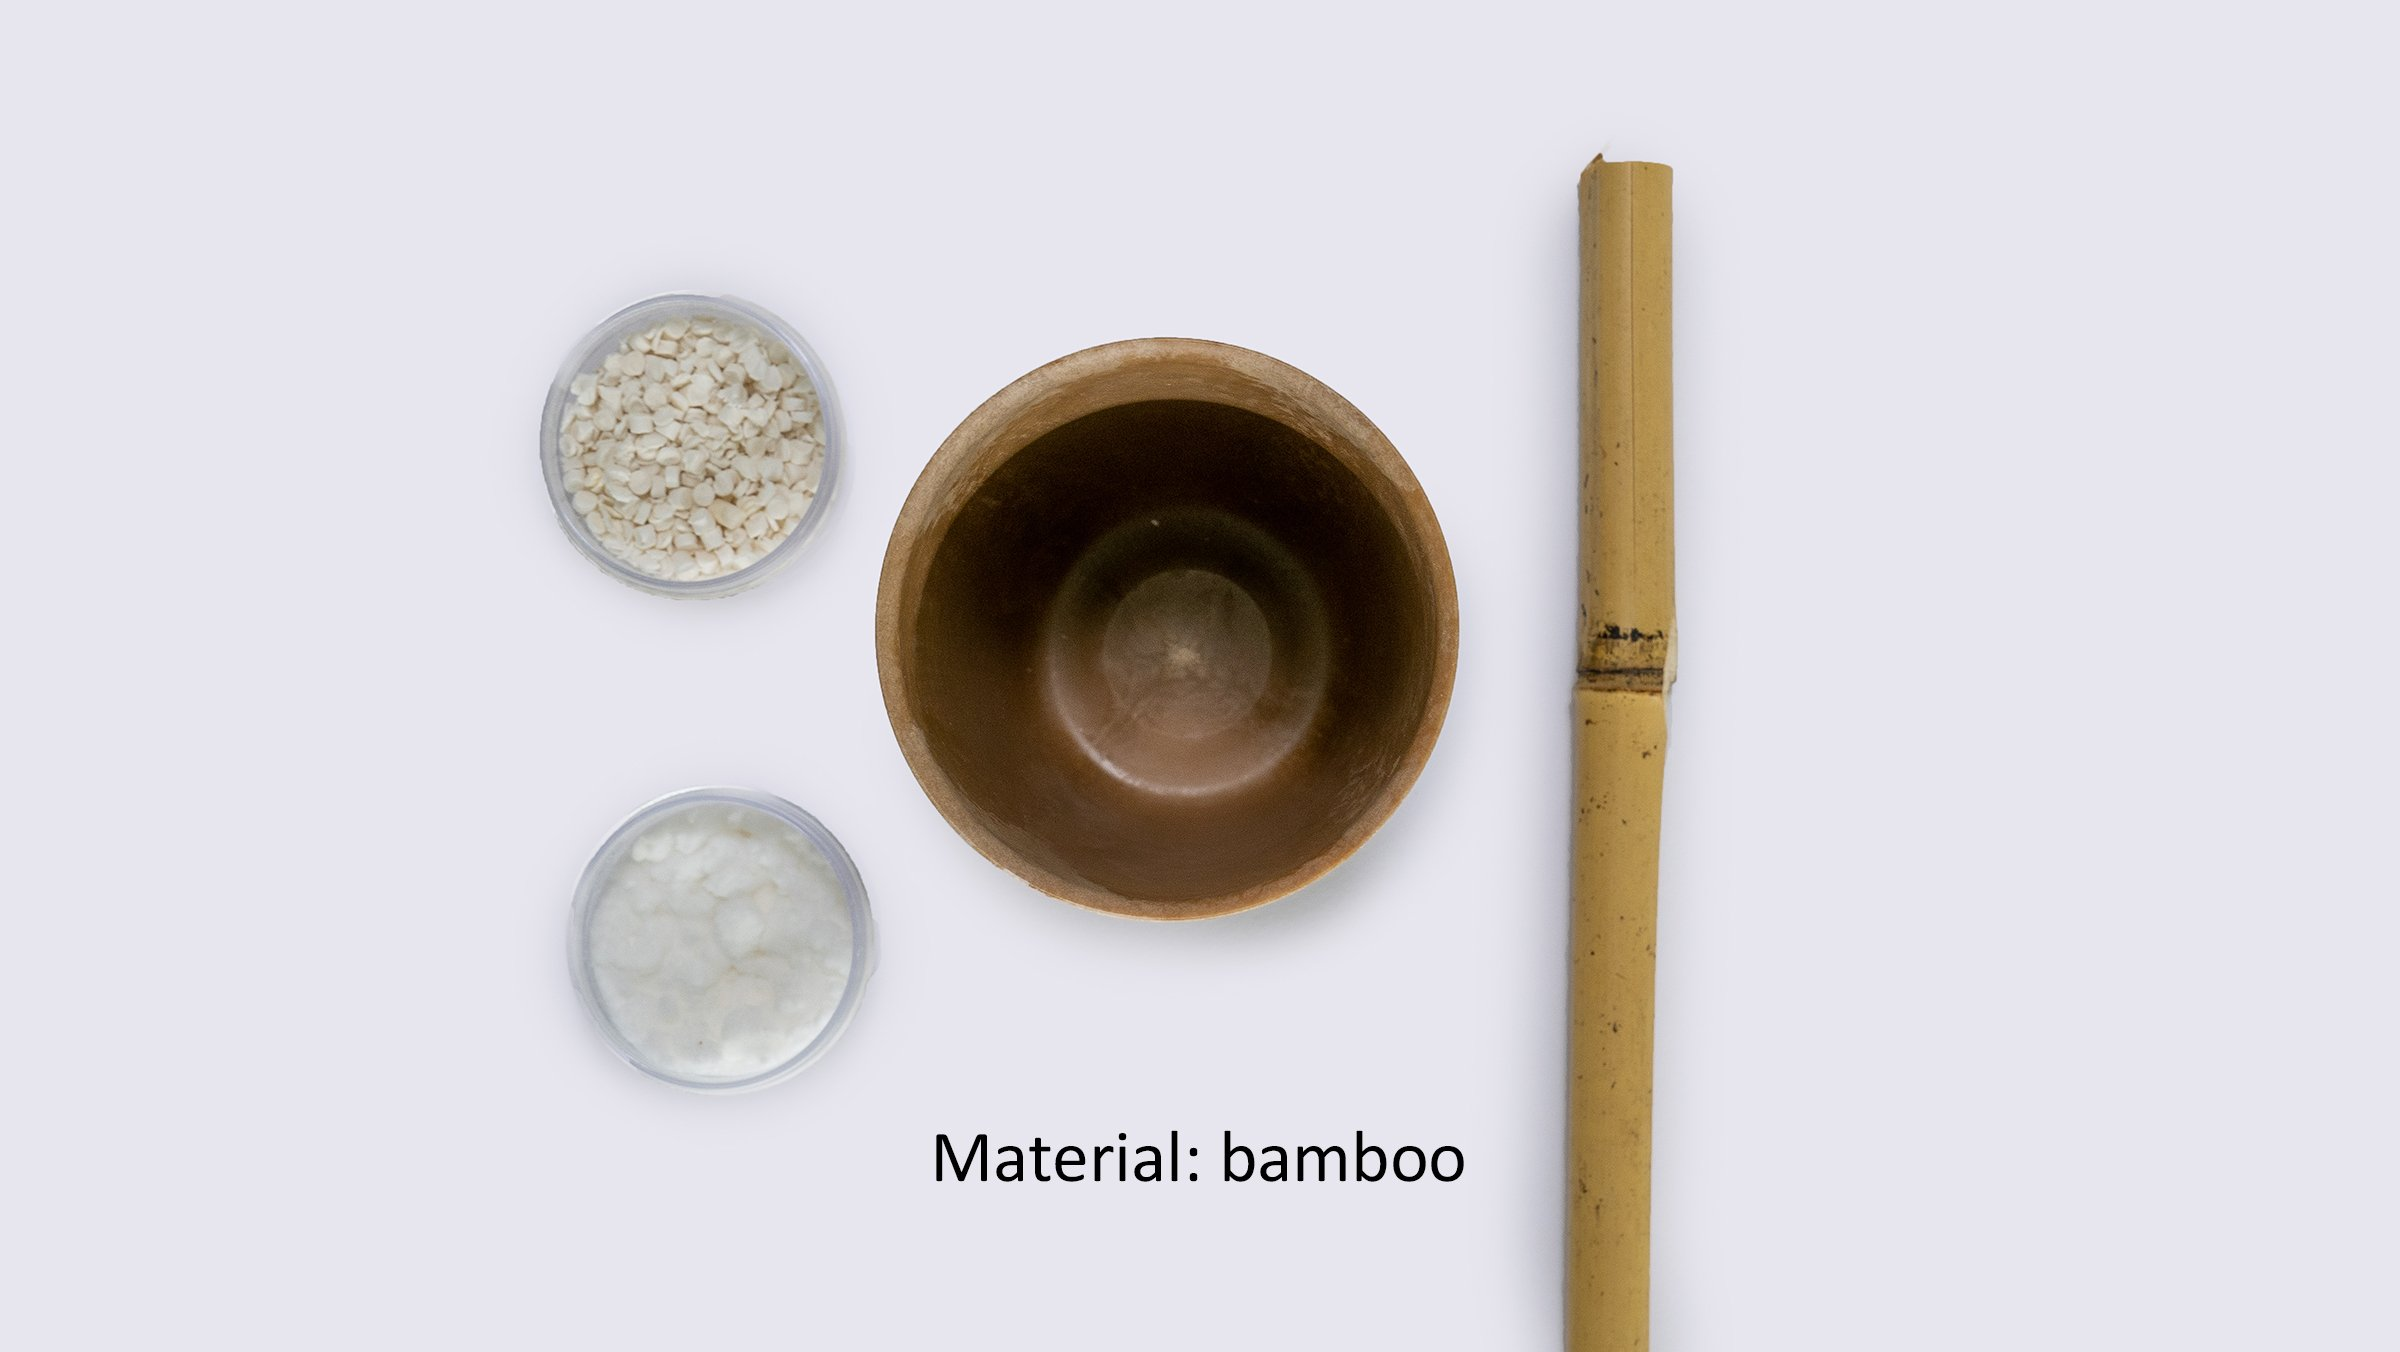 Photo: Reusable cups using cellulose fiber (material: bamboo).